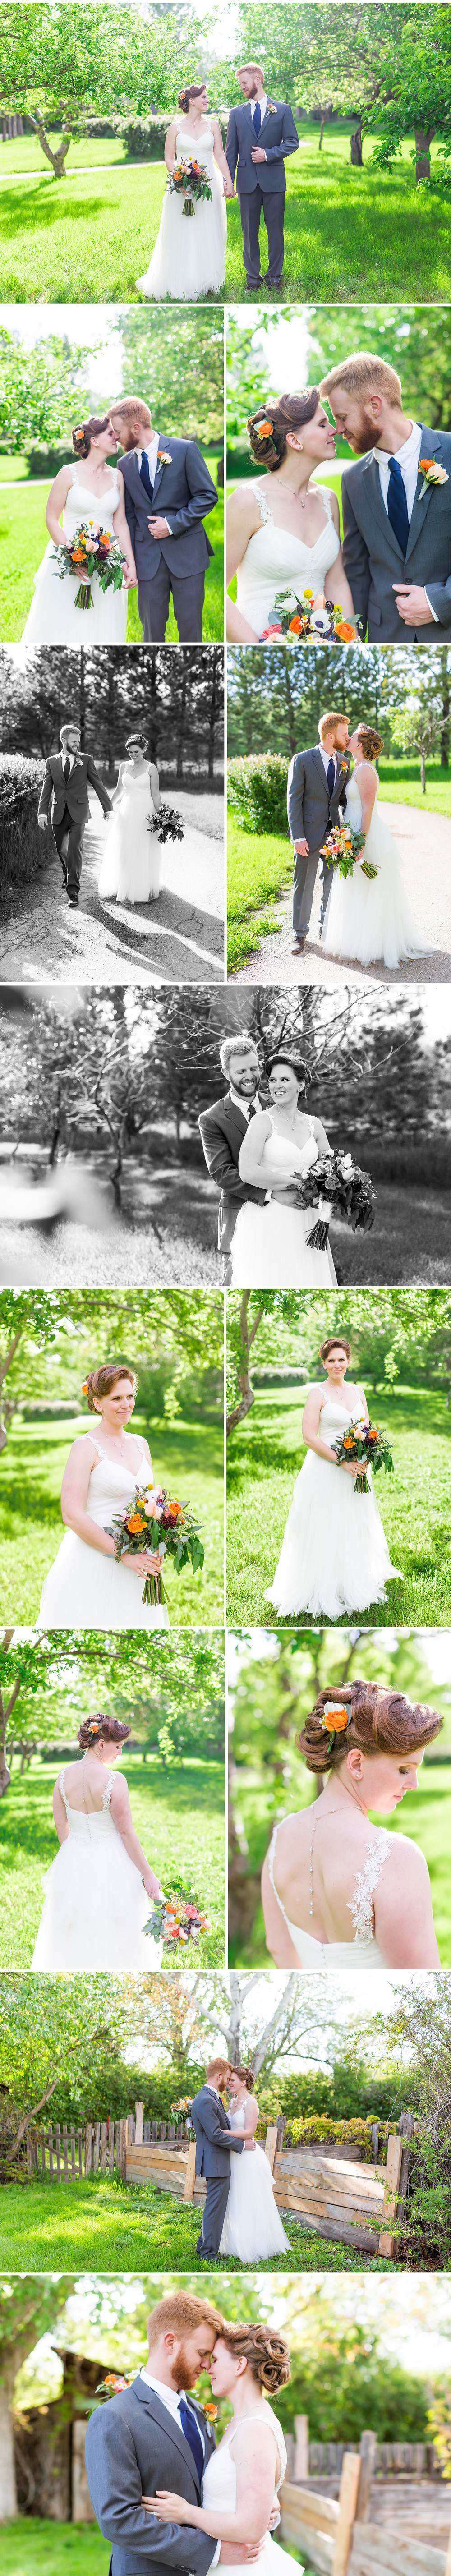 9 Bride & Groom Portraits.jpg